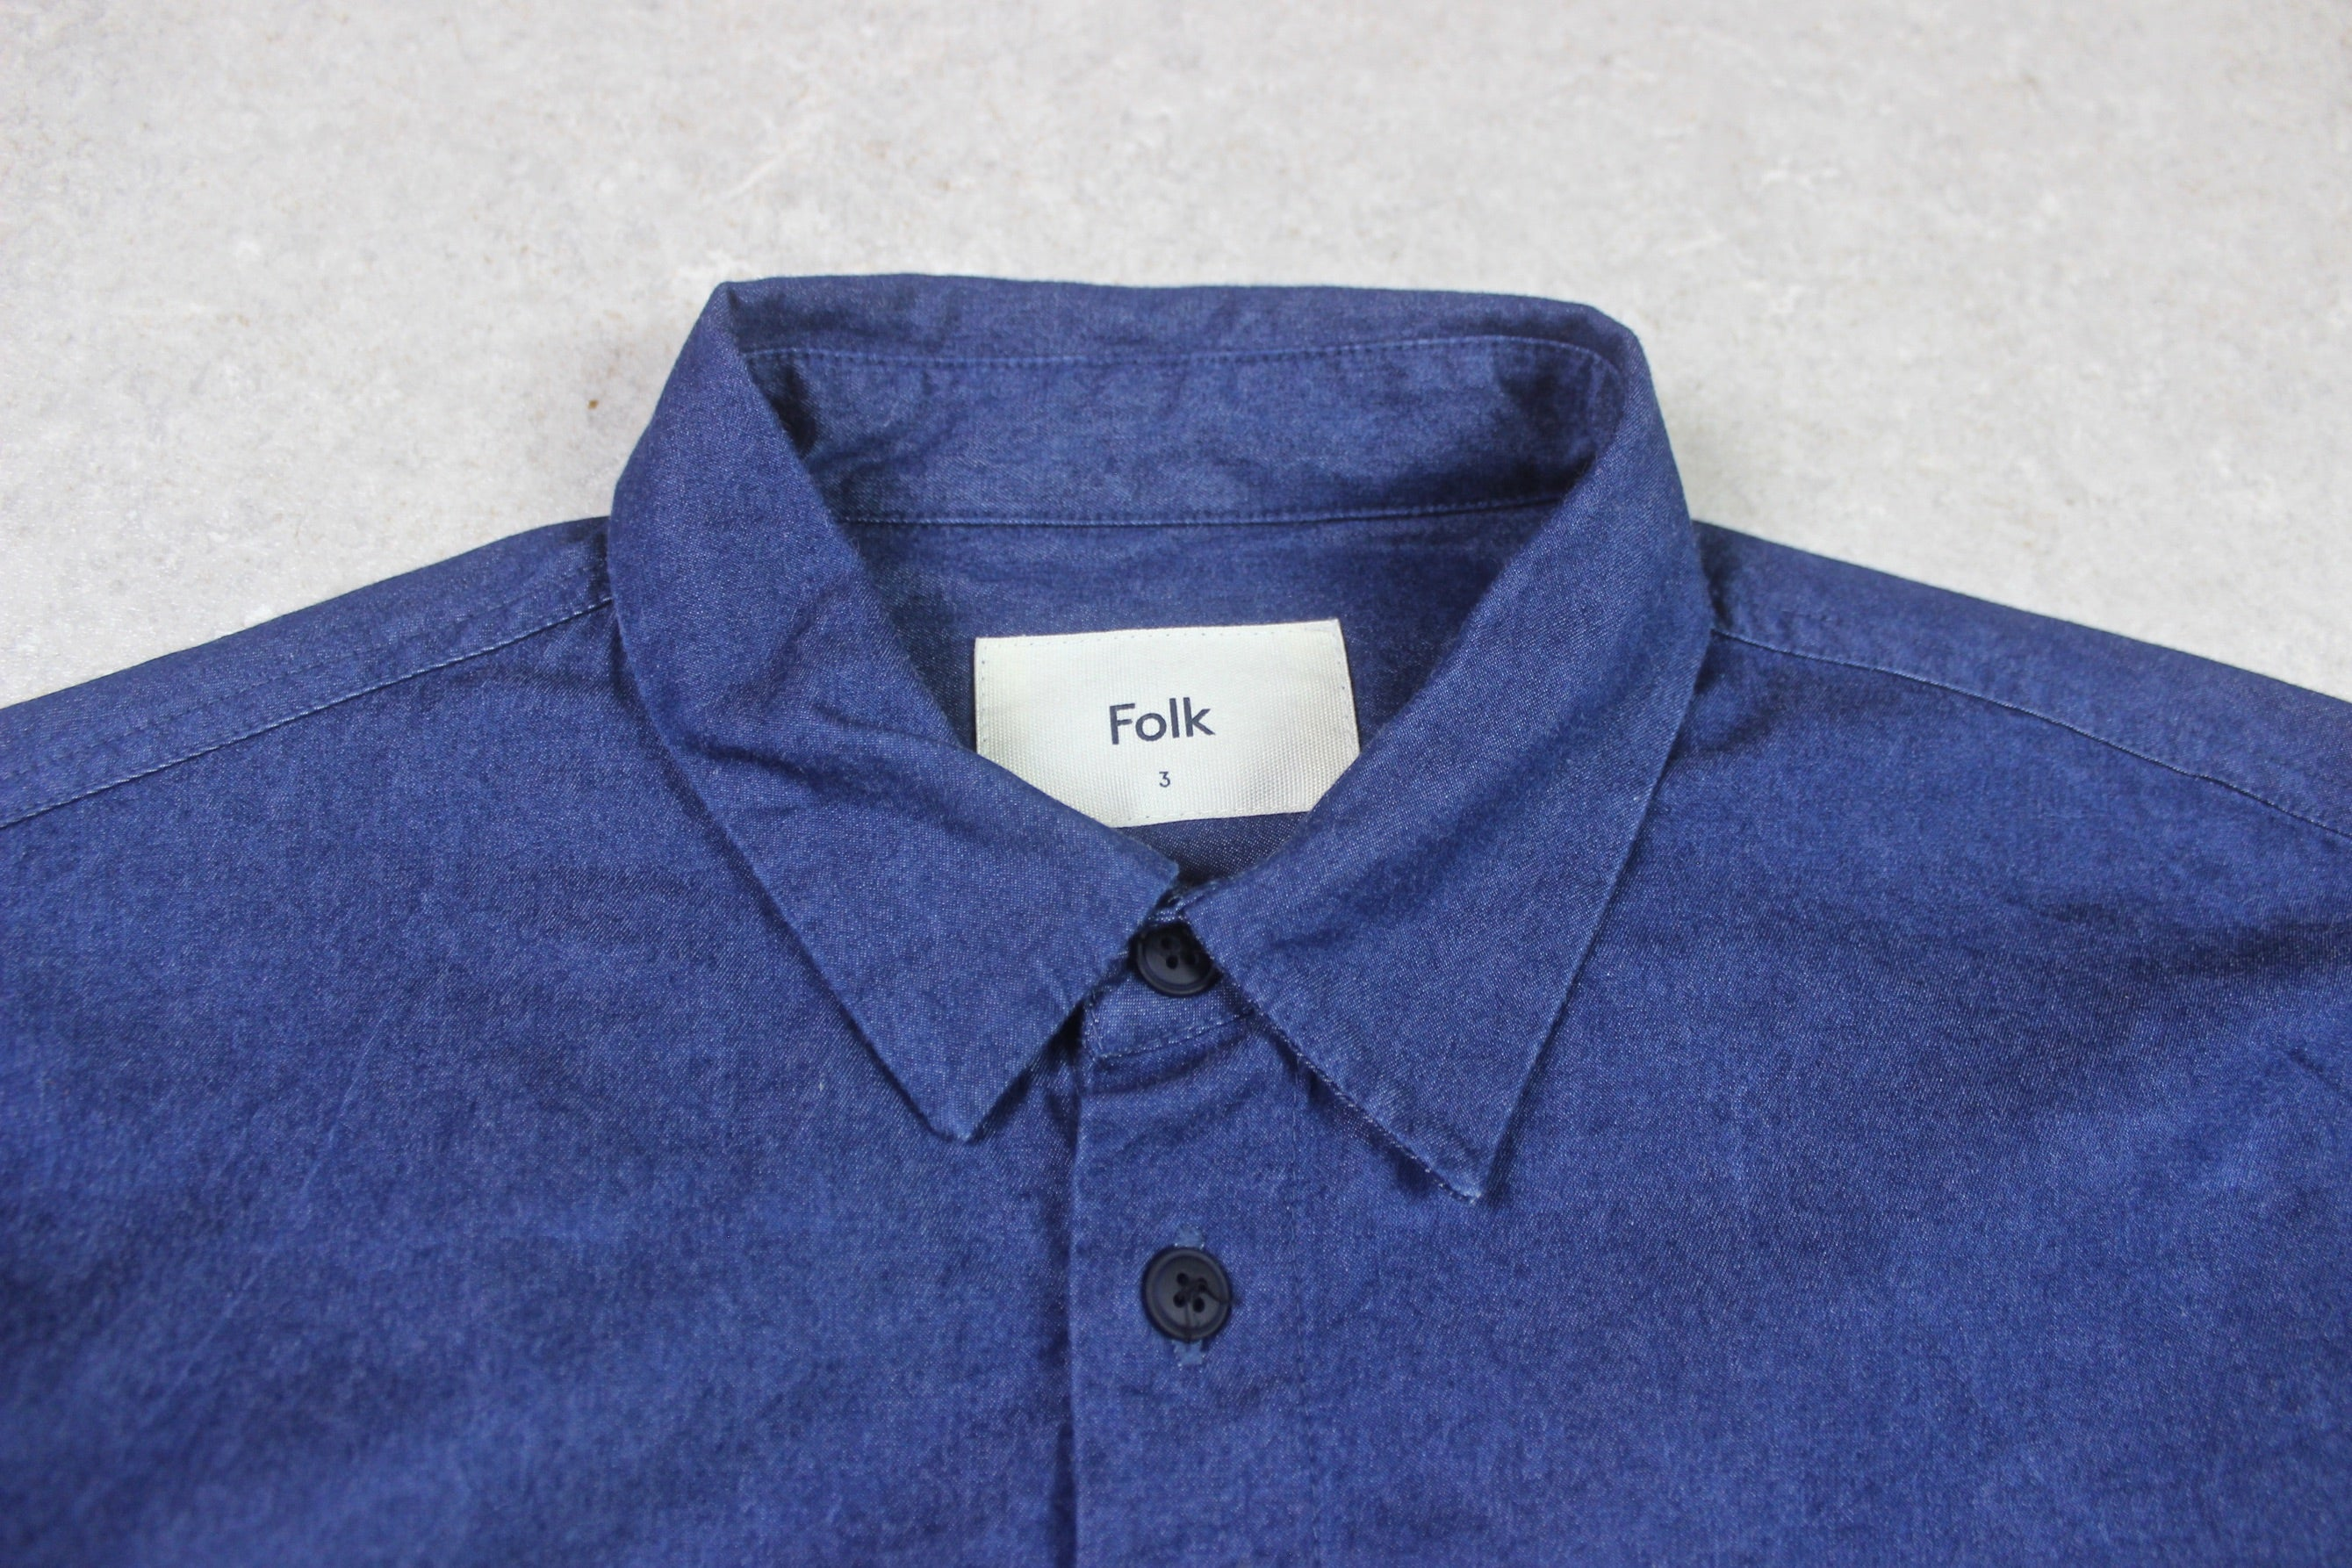 Folk - Shirt - Denim Blue - 3/Medium